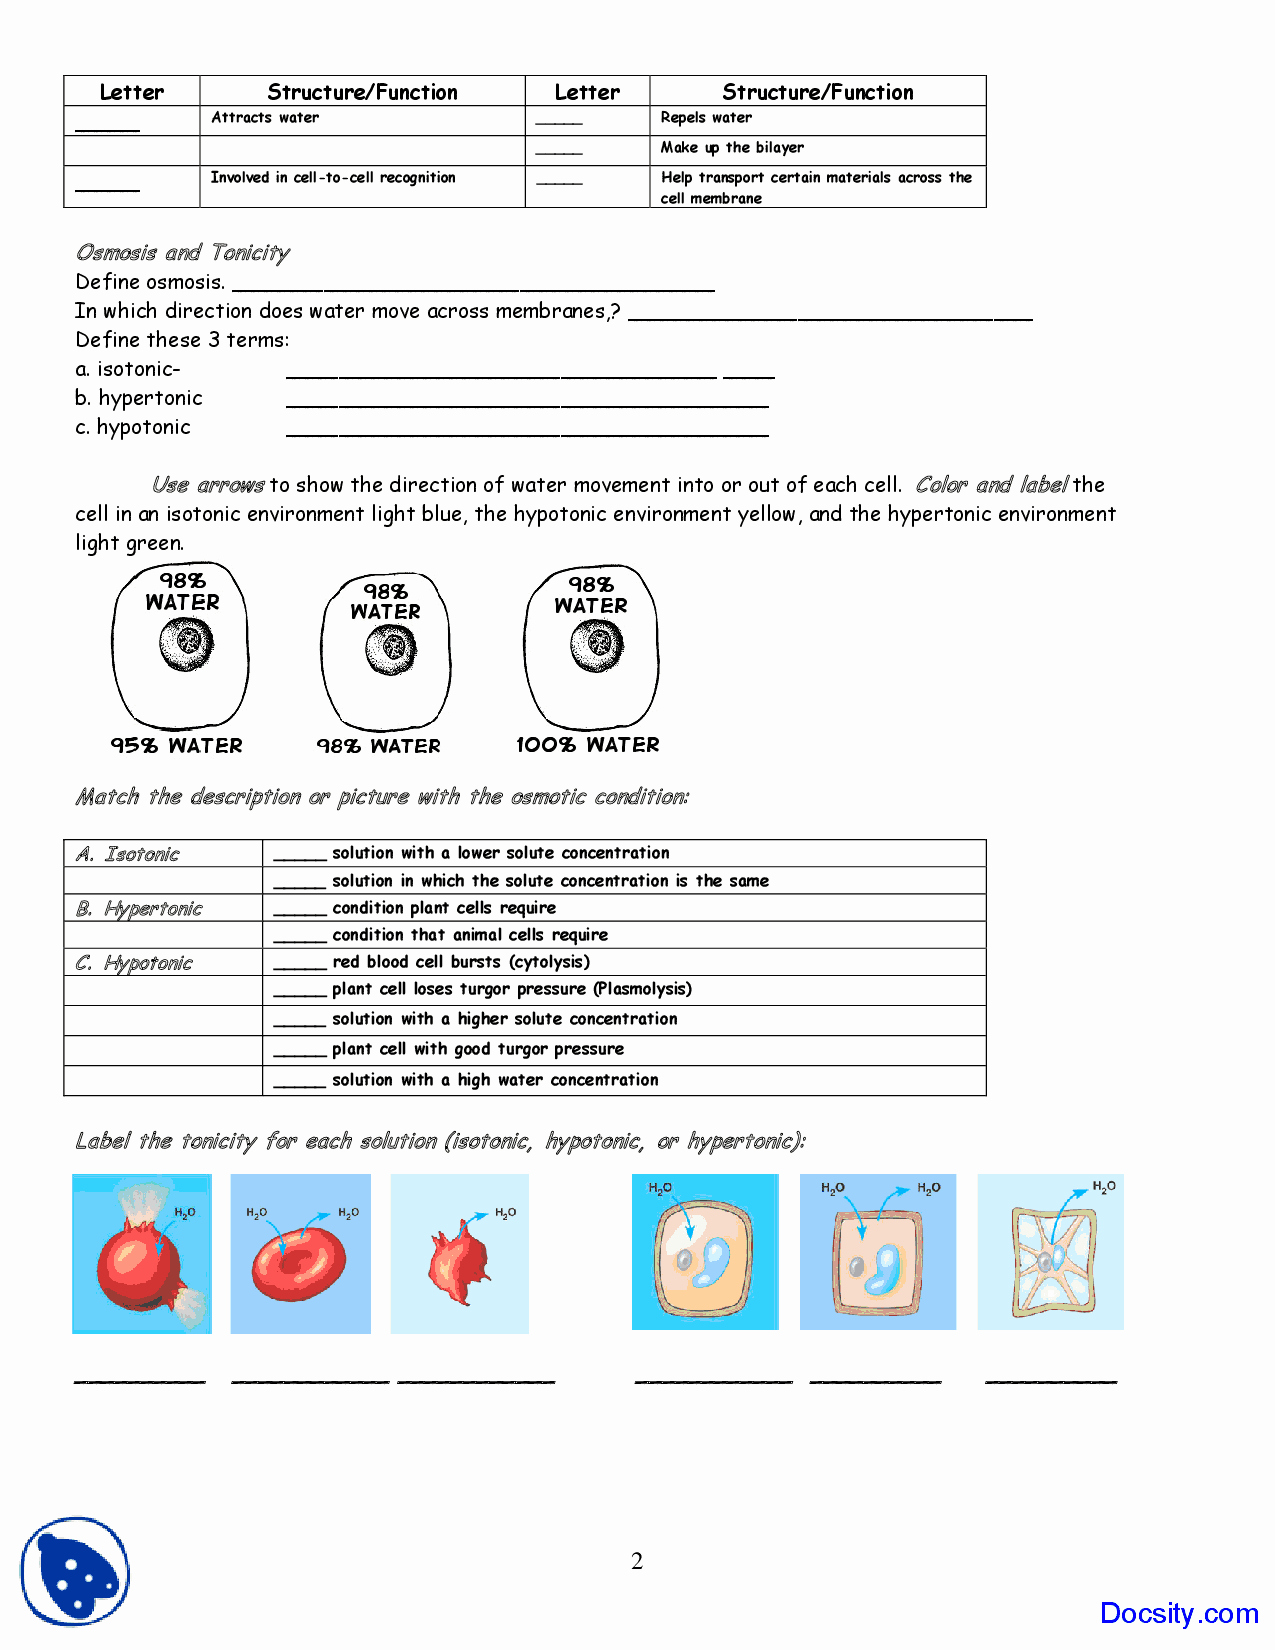 Osmosis and tonicity Worksheet Awesome Cell Membrane Coloring Application Of Biology